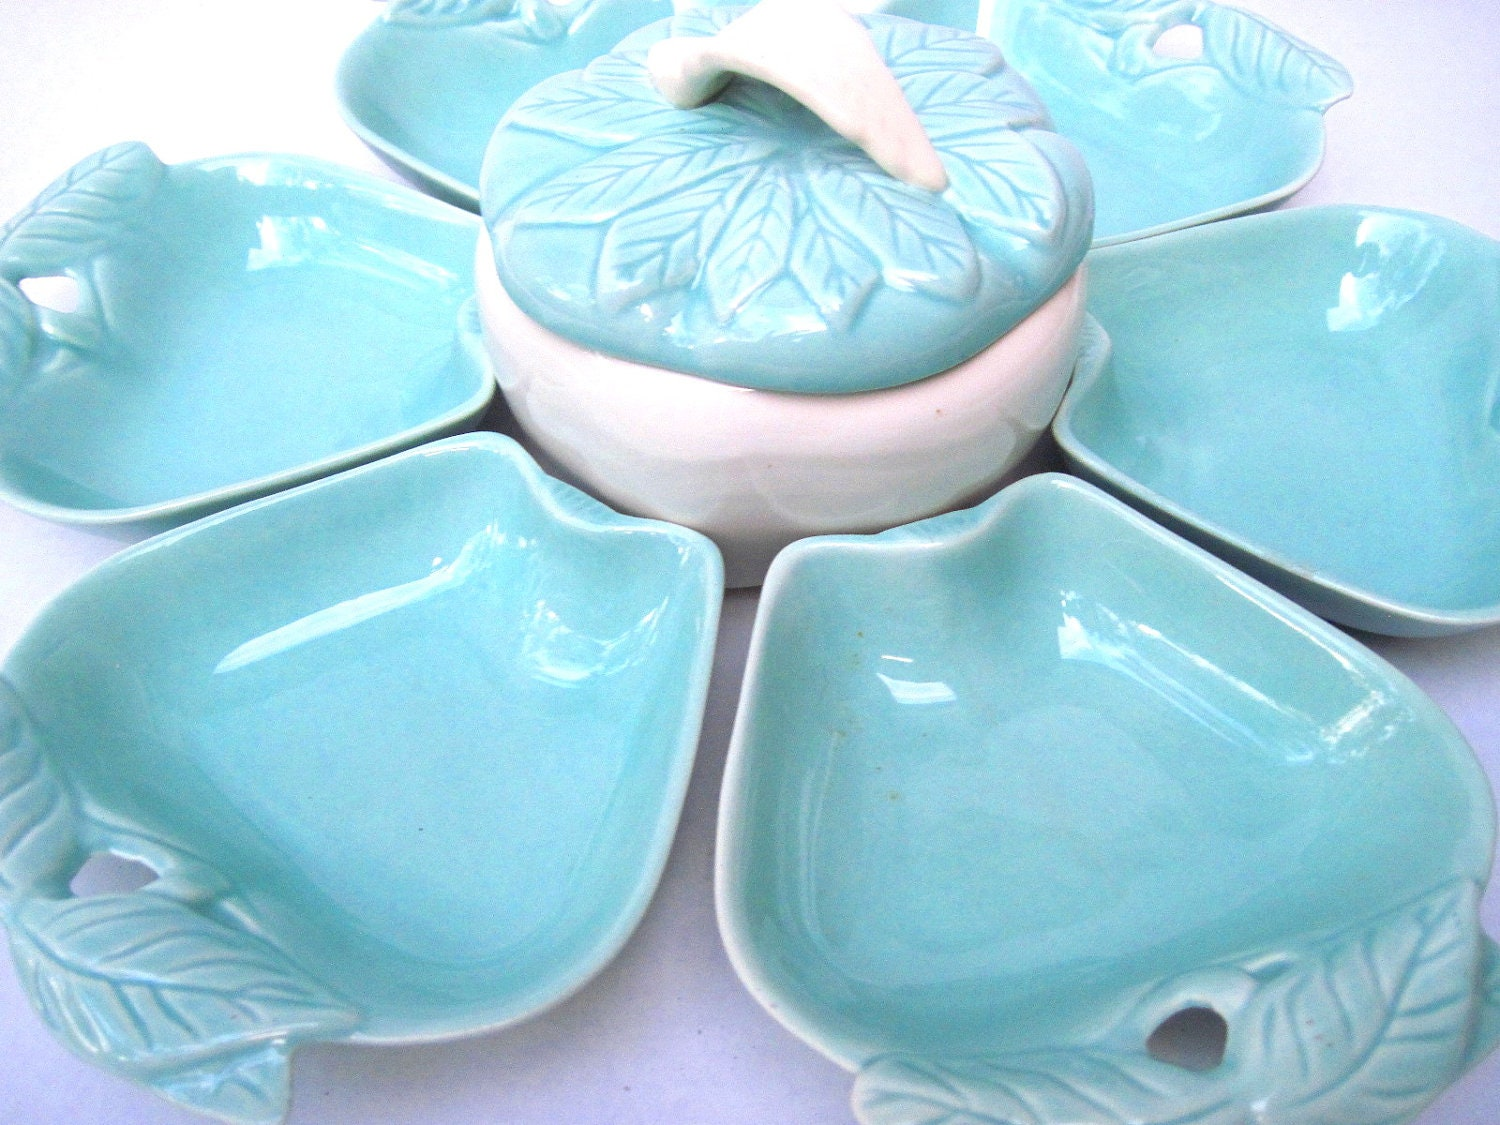 apple shaped dishes turquoise party hoenig mid century. Black Bedroom Furniture Sets. Home Design Ideas